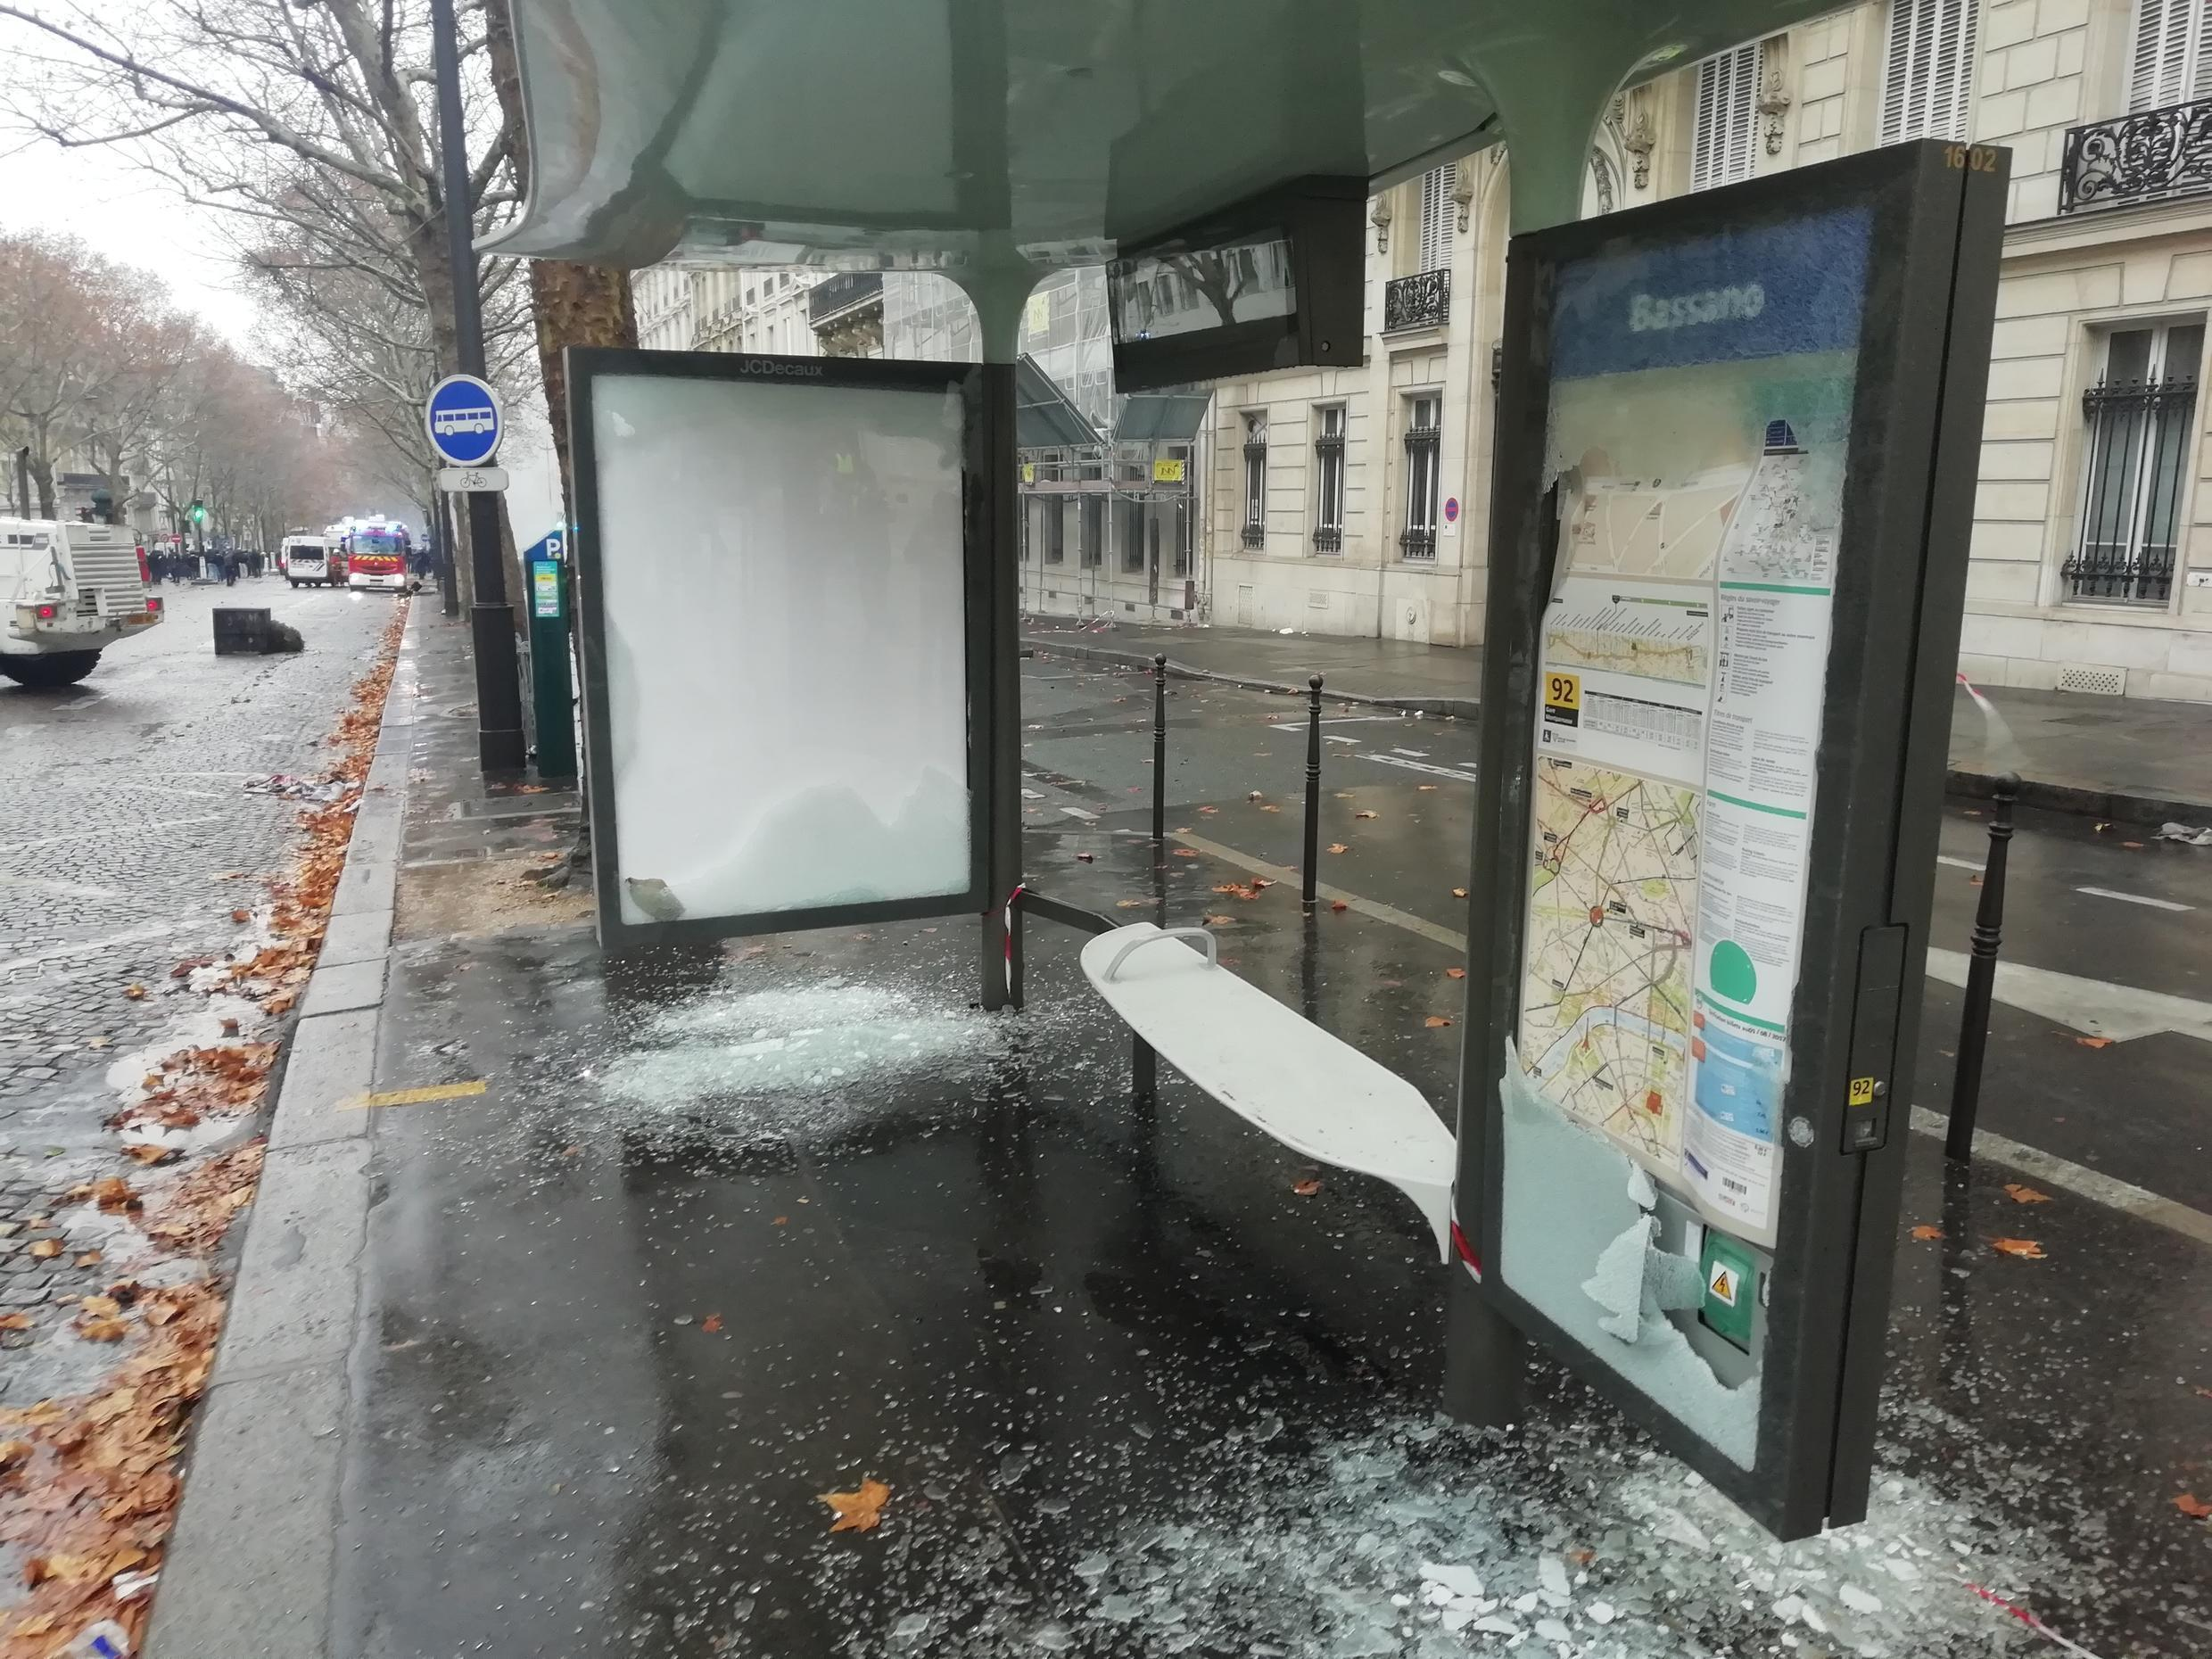 Several bus stops were obliterated with all glass panes smashed.